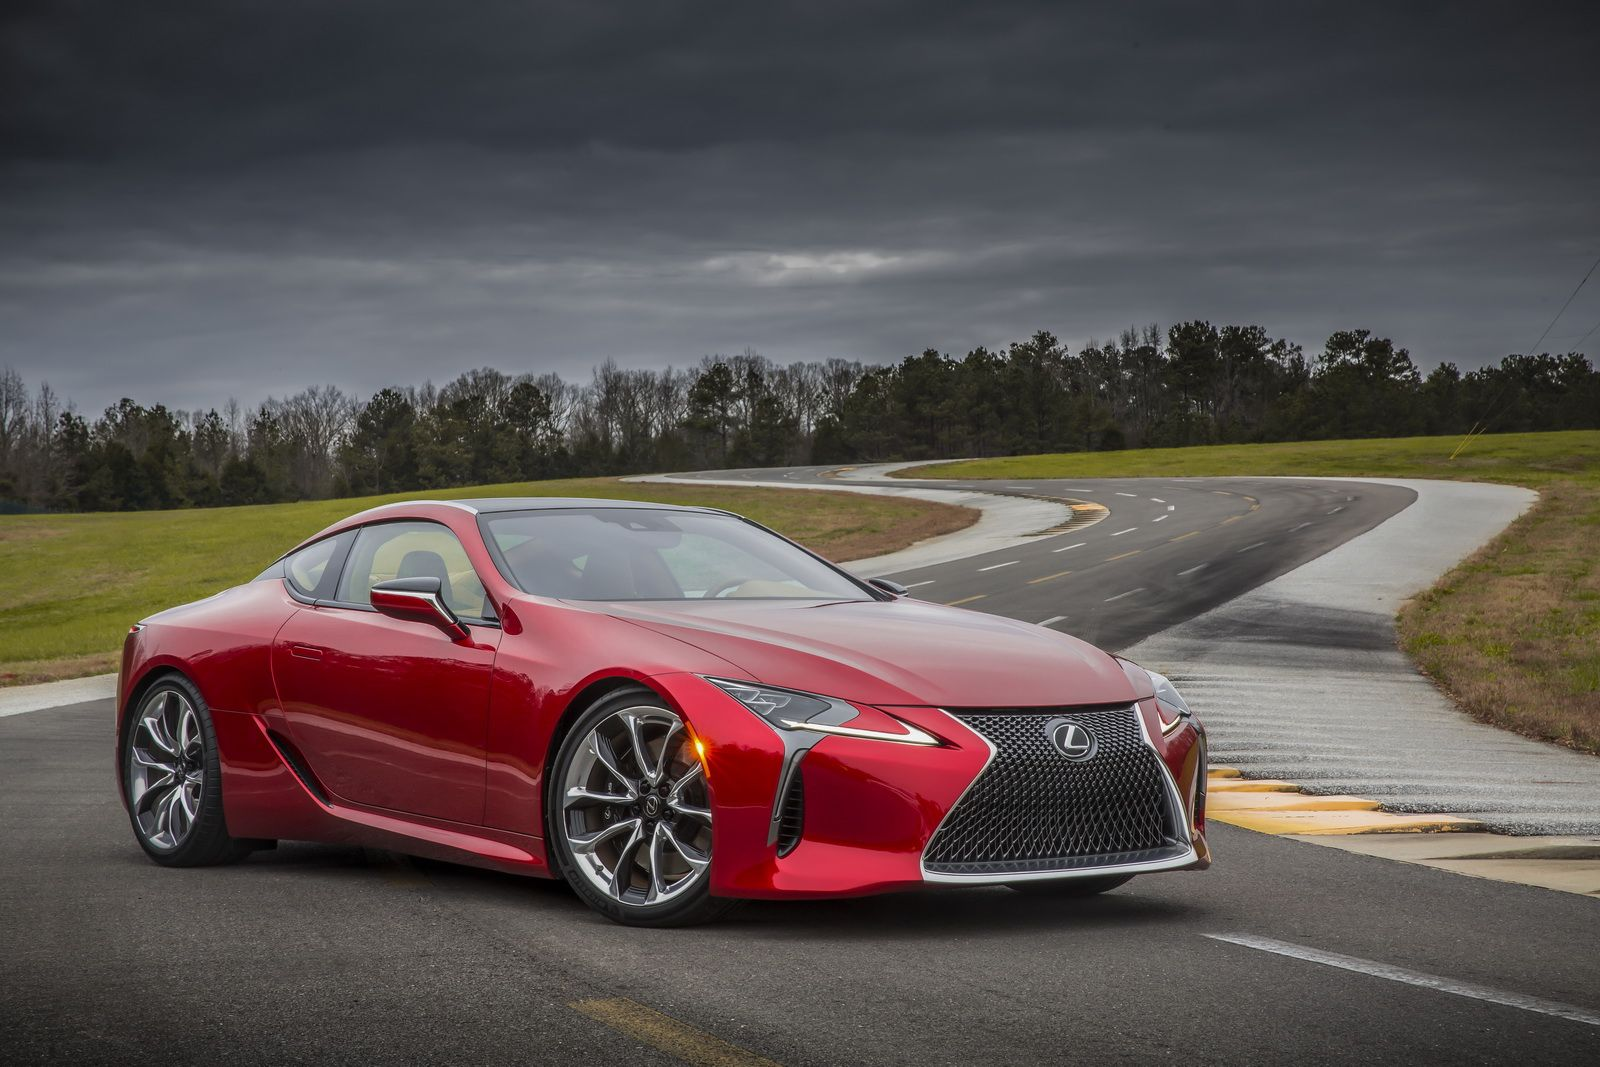 Lexus Launches Its New Lc 500 Range At New York Auto Show The New Lc 500 Hybrid Coupe Range From Lexus Will Be Presented For The F Lexus Lc Lexus Lfa New Lexus